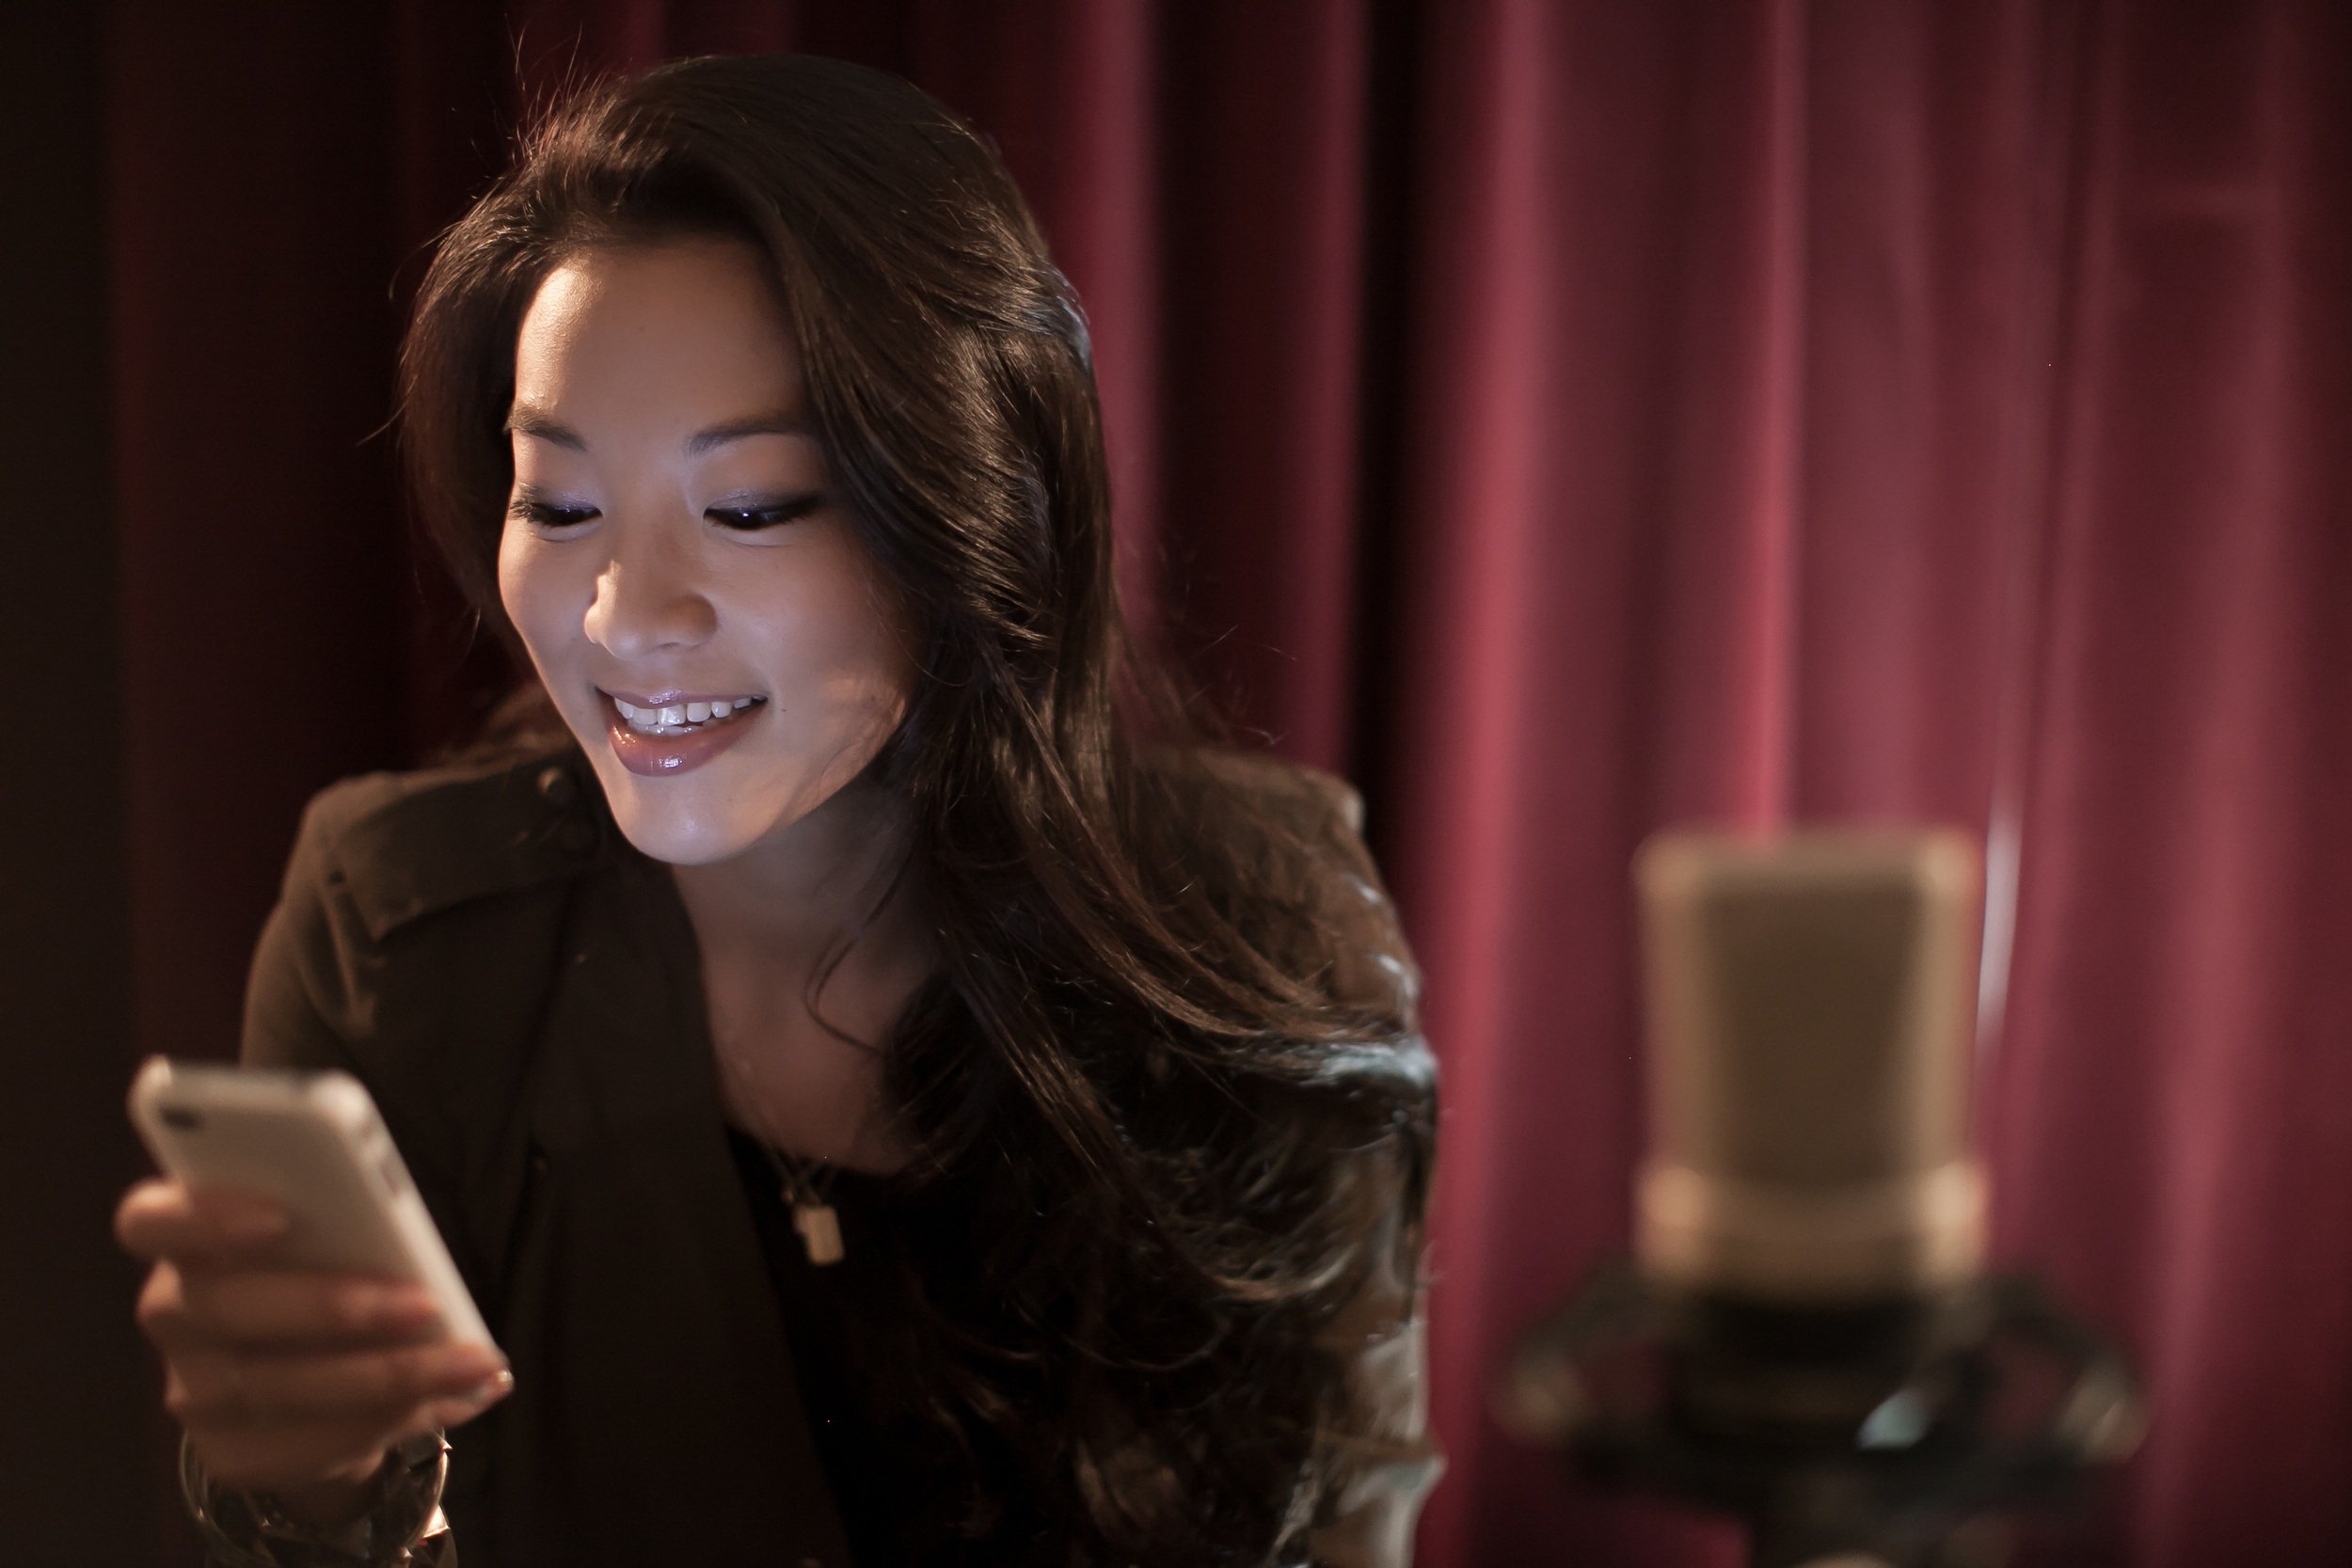 arden staying in touch with her adoring fans